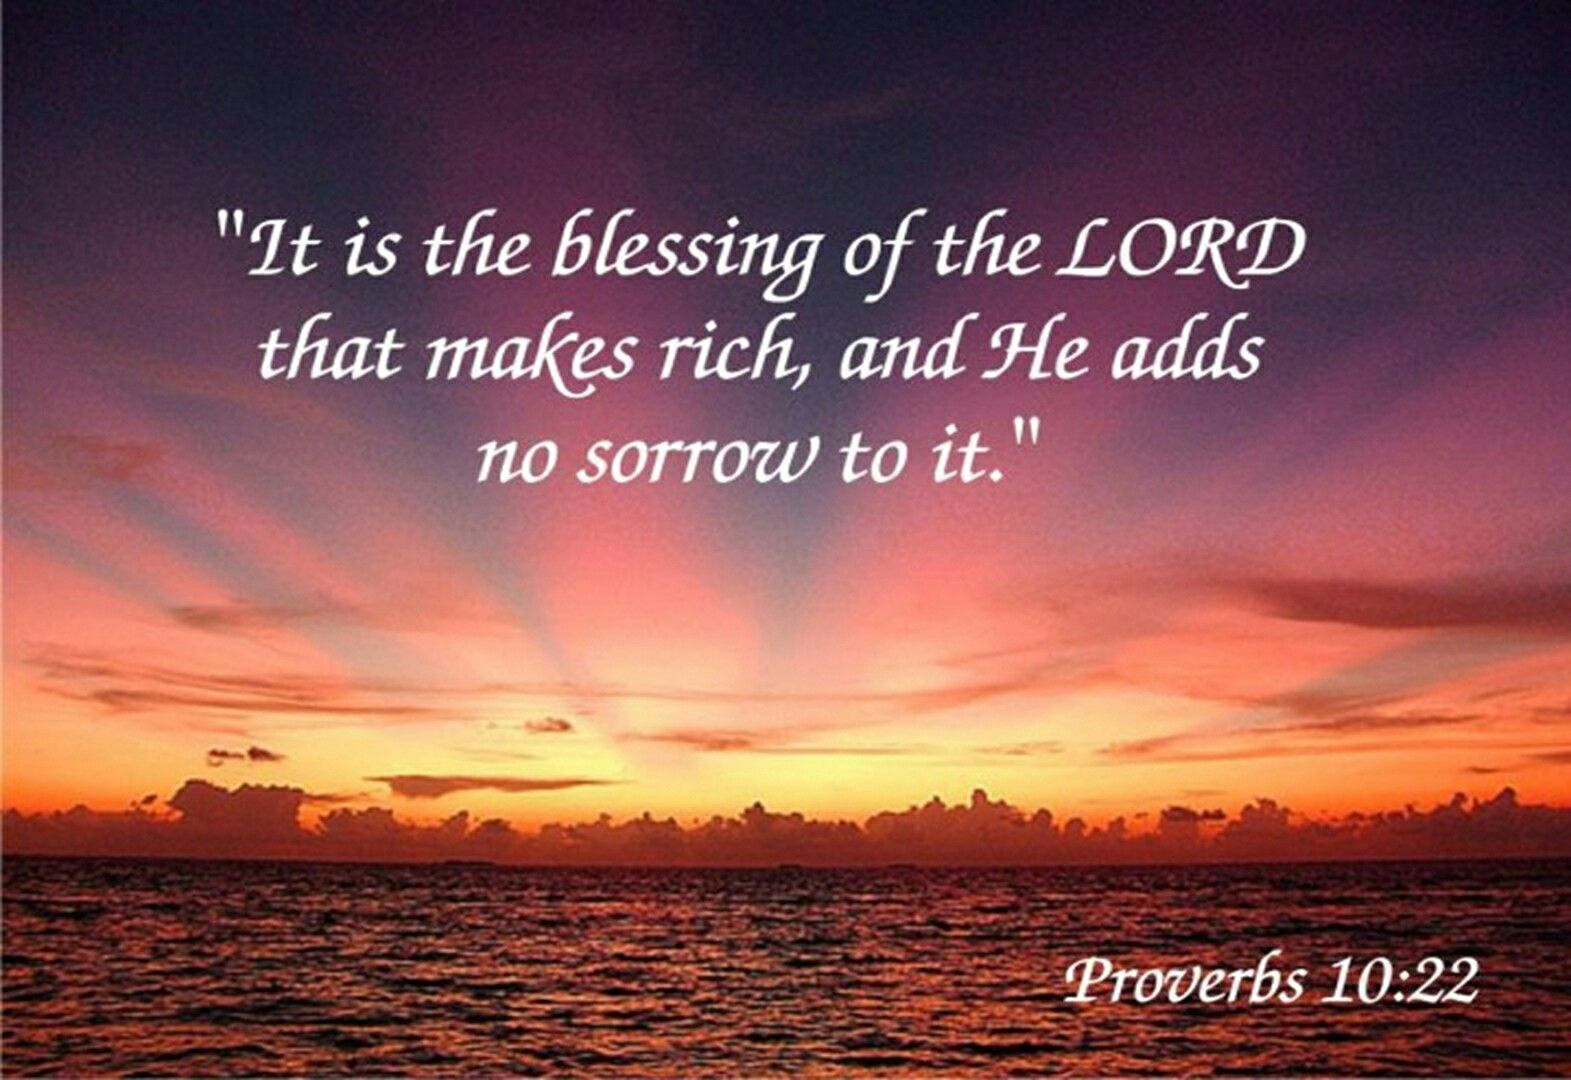 Proverbs 10:22 The blessing of the Lord makes one rich, and He adds no sorrow to it. | Proverbs 10, Proverbs, Bible promises